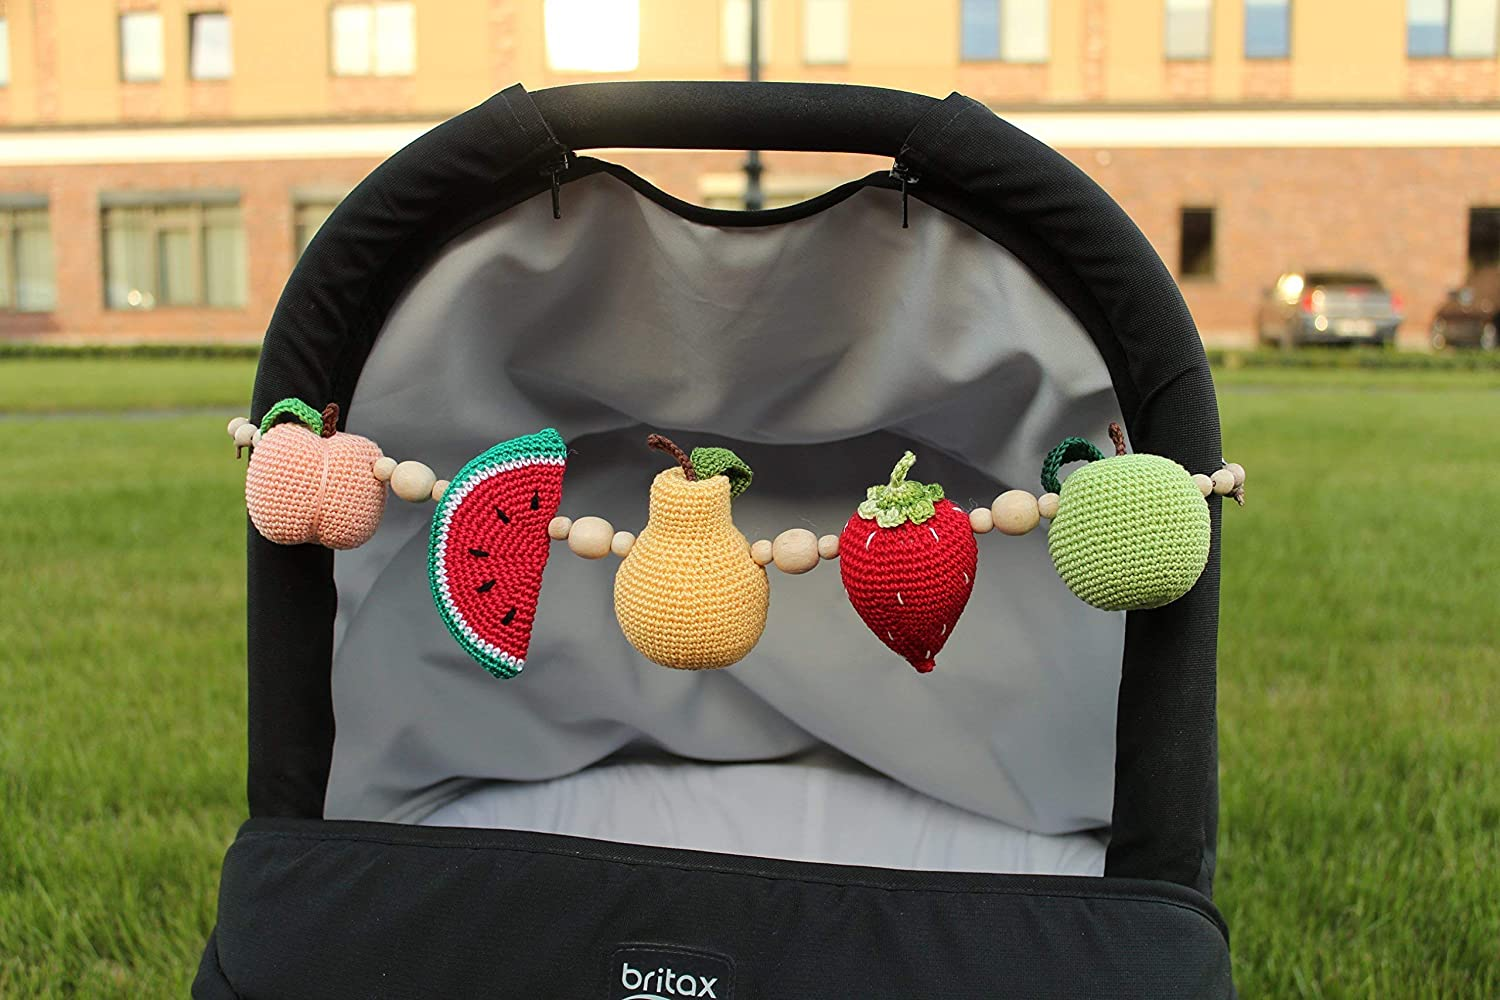 Pram mobile, stroller mobile, crochet fruits garland, baby rattle, pram decoration, stroller mobile, string mobile